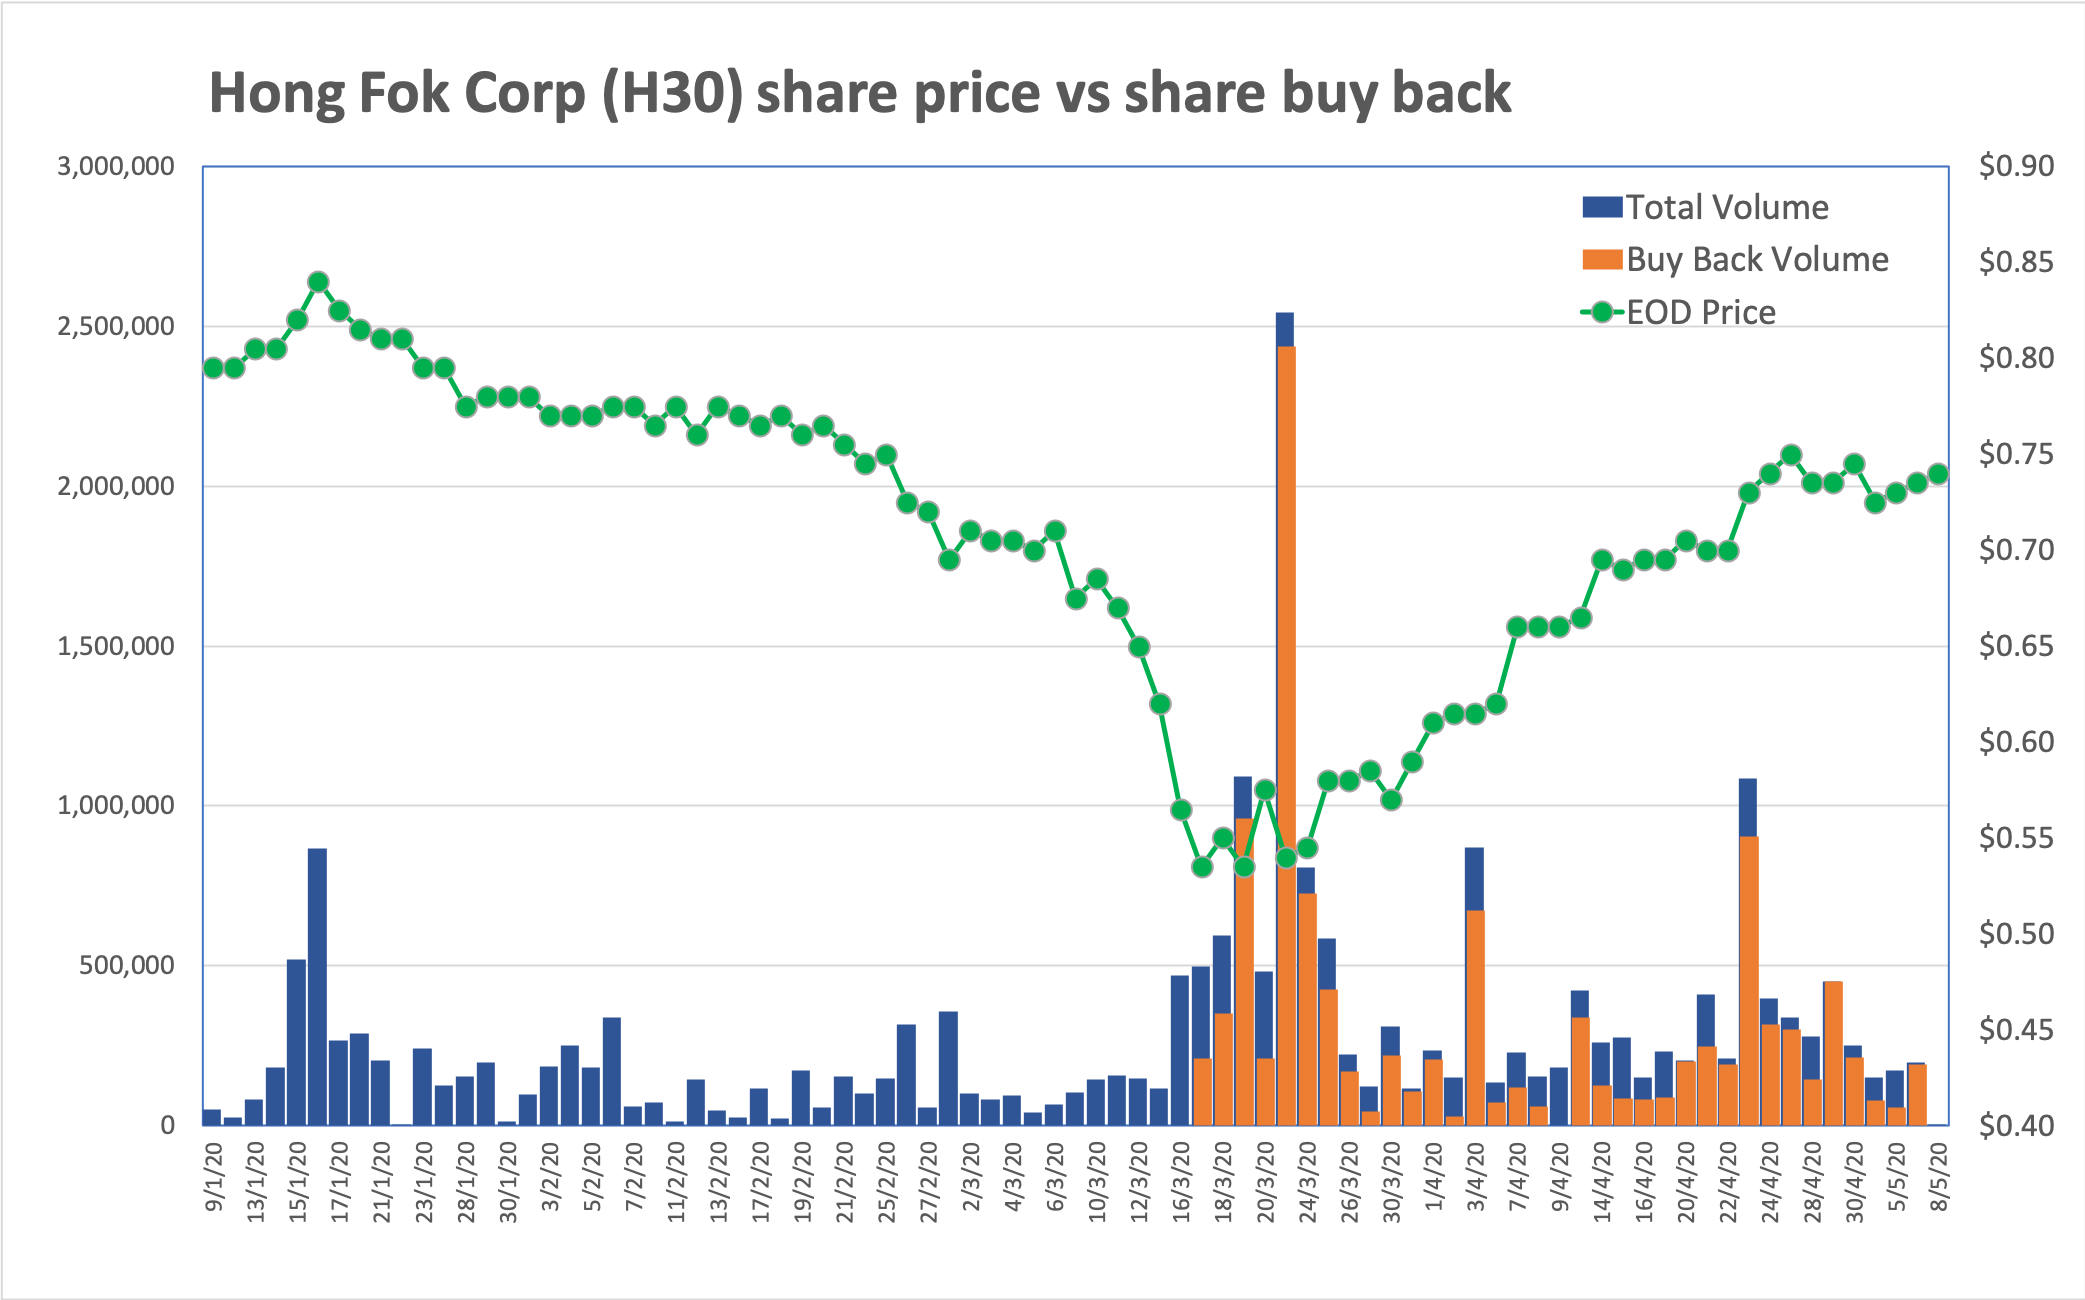 Hong Fok Corp Share Price and Share Buy Back